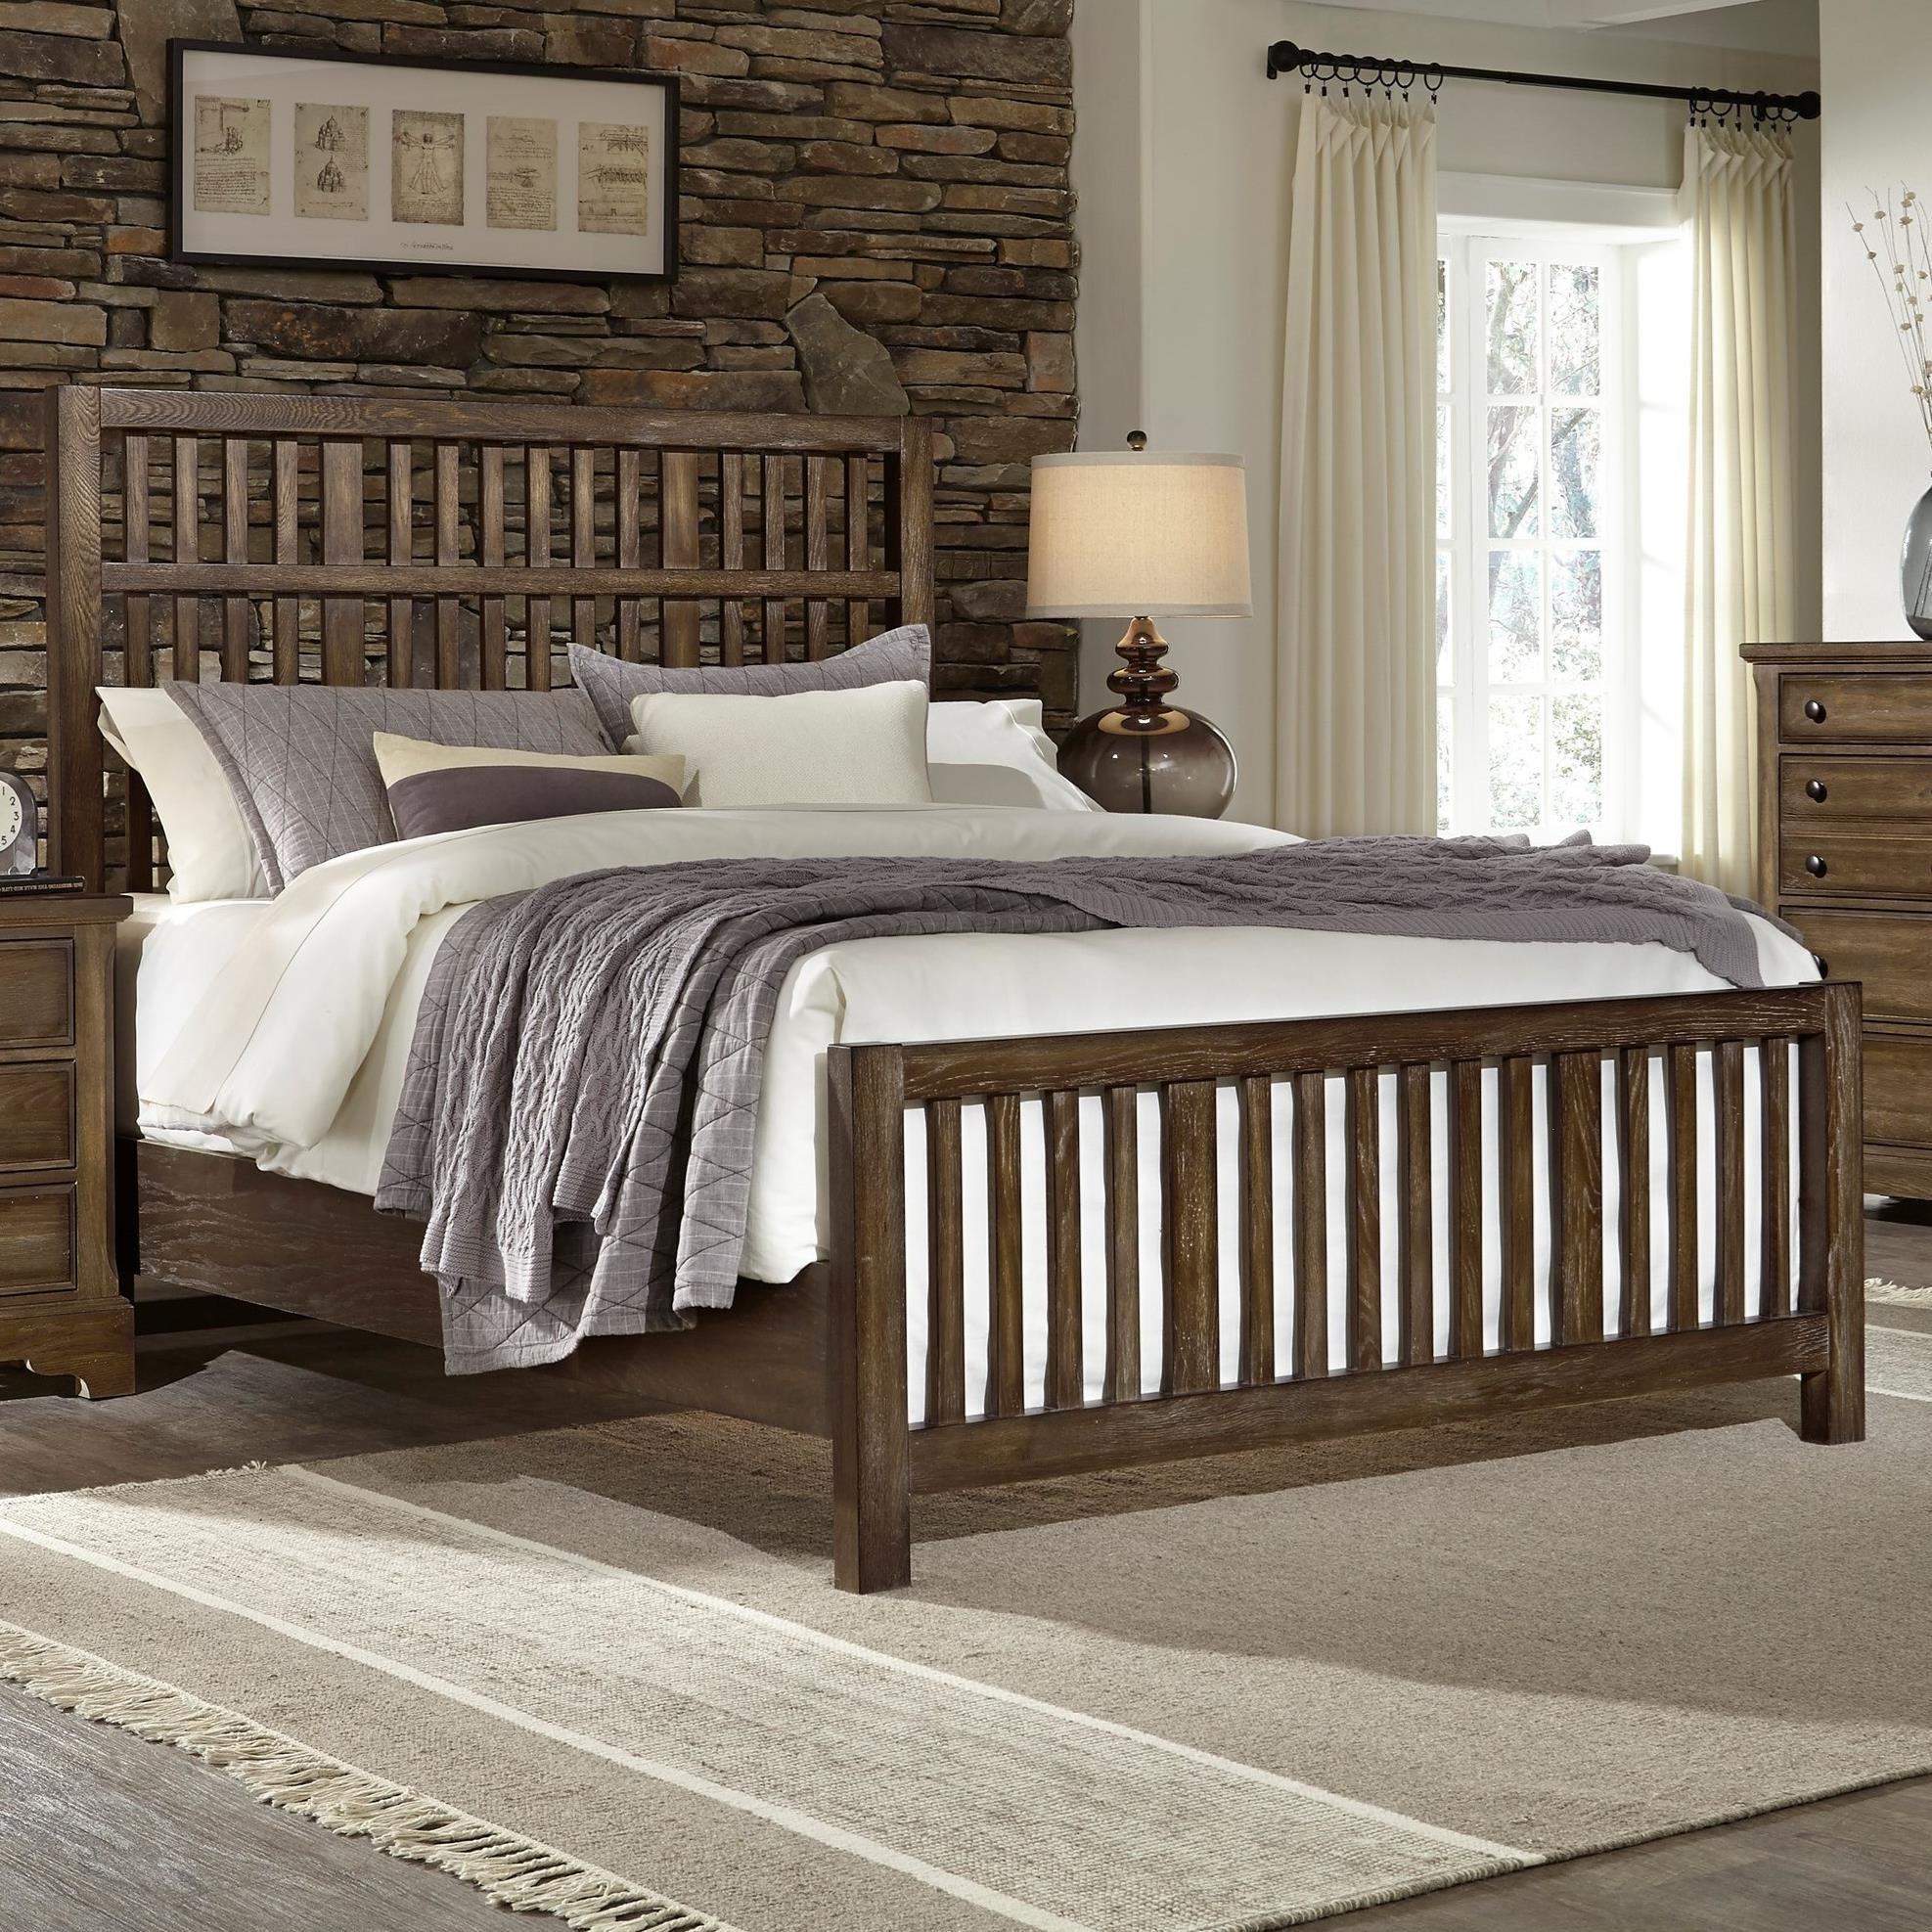 Artisan Choices Queen Craftsman Slat Bed by Artisan & Post at Northeast Factory Direct